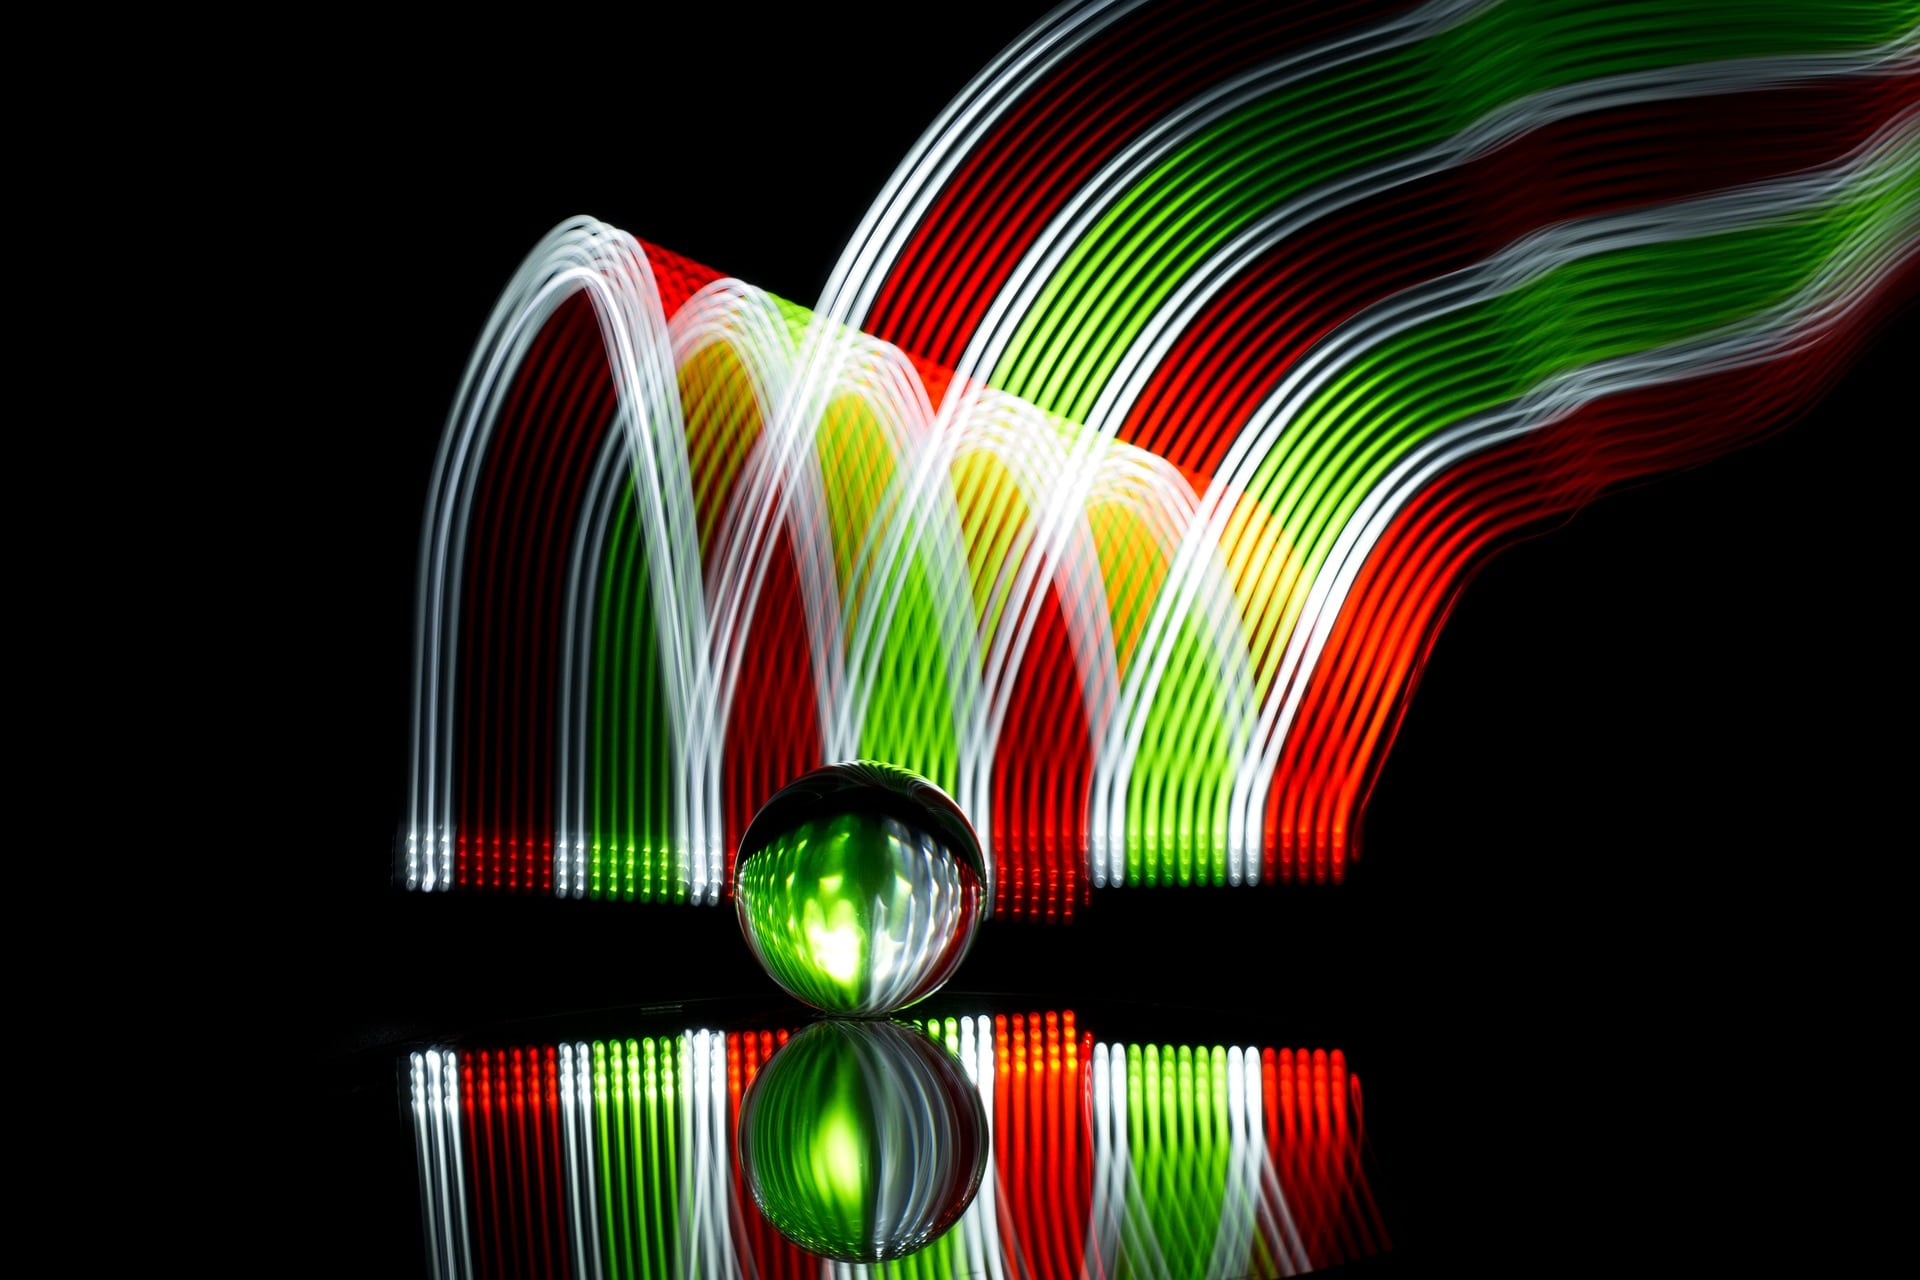 How to Paint with Light: Light Painting Photography Tutorial